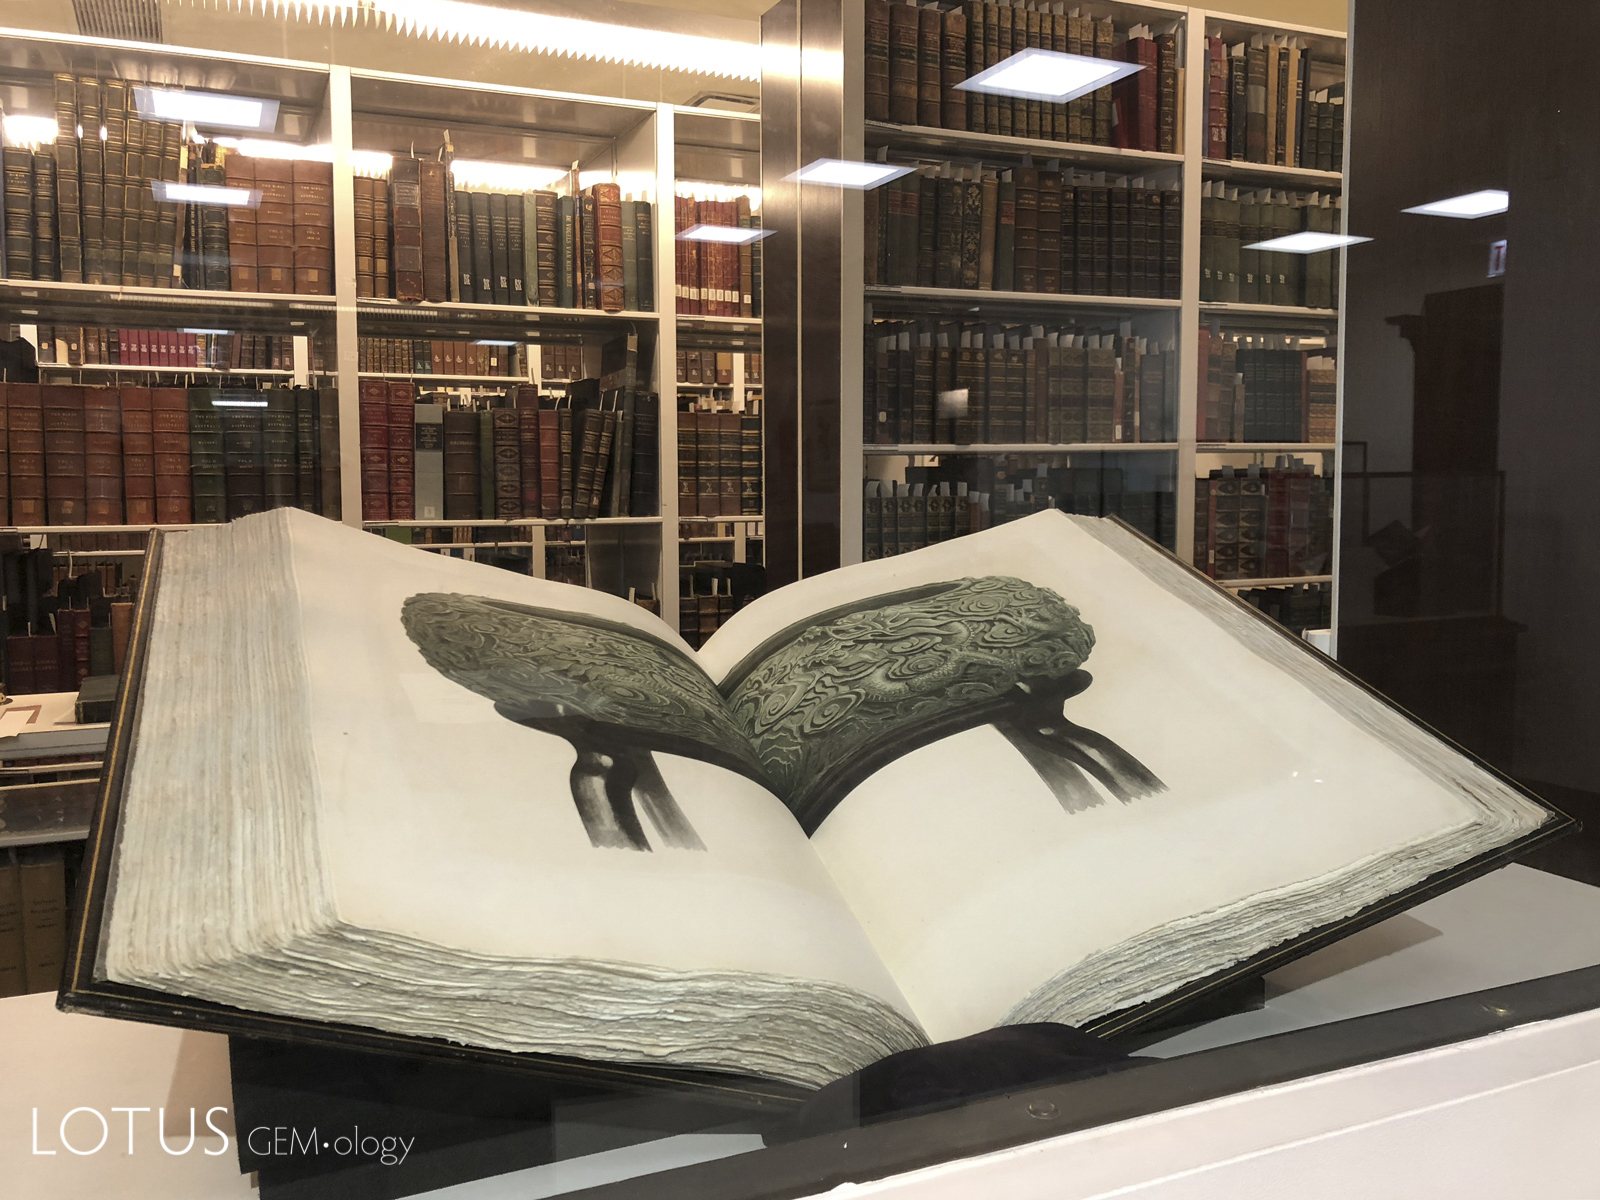 Two of the amazing lifelike plates from The Bishop Collection in the library of Chicago's Field Museum